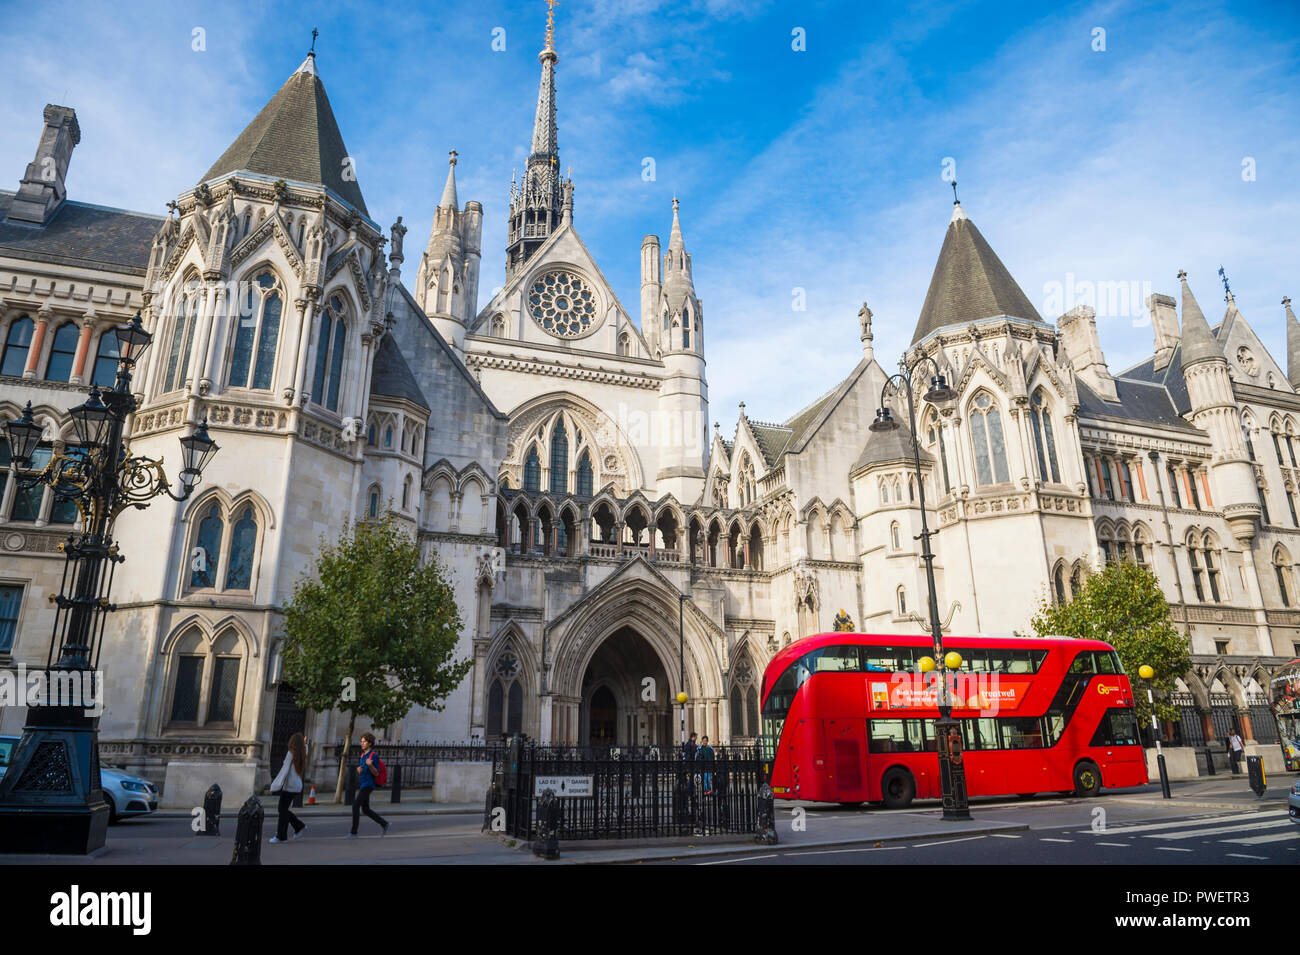 LONDON - OCTOBER 13, 2018: A modern Routemaster double-decker bus passes in front of the landmark Royal Courts of Justice on Fleet Street. Stock Photo